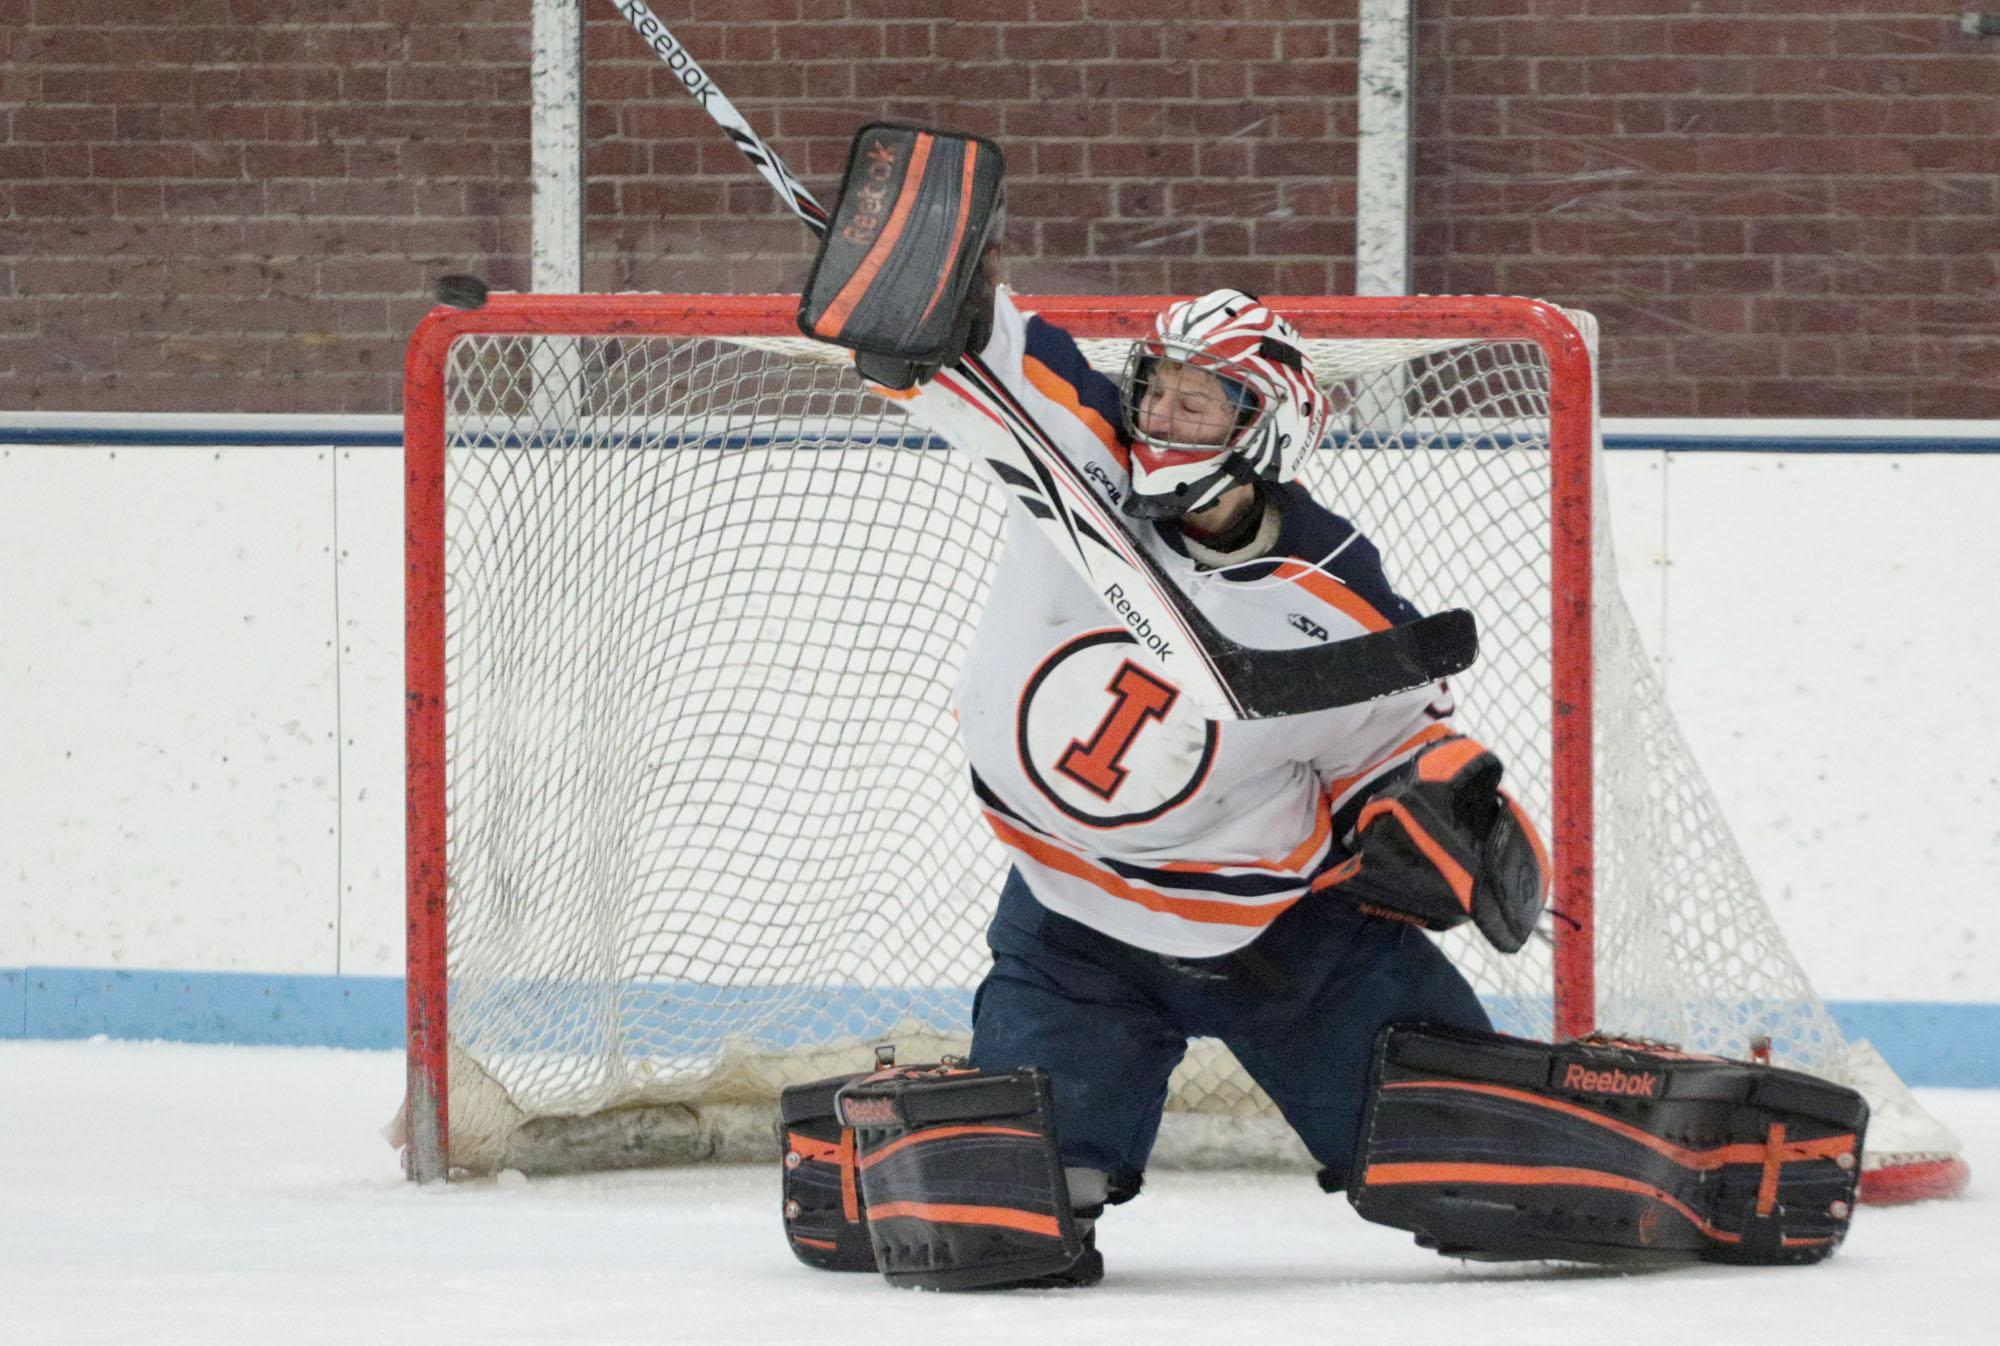 Illinois' Joe Olen (31) deflects a shot away from the goal during round one of the CSCHL hockey tournament v. Iowa State at the Ice Arena on Friday, Feb. 20, 2015. Illinois won 2-1.